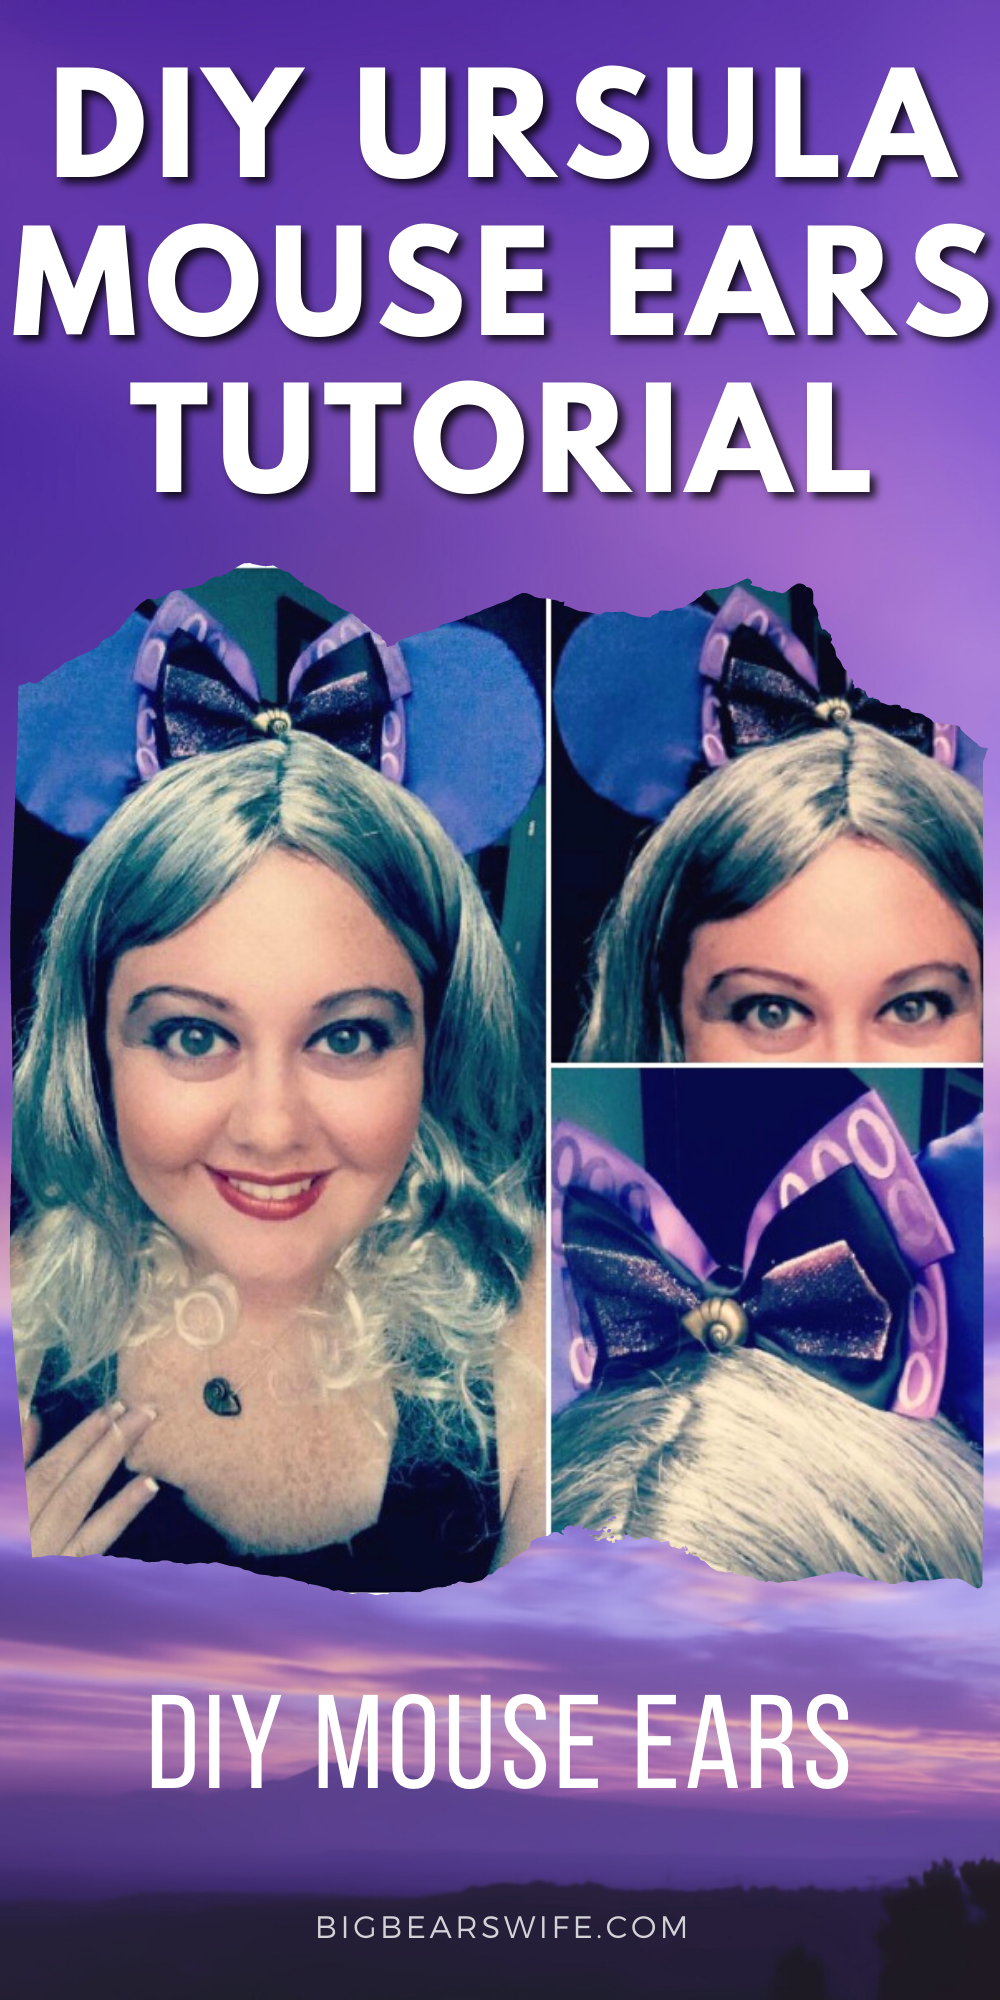 Want to make your very own Ursula Mouse Ears for your trip to Disney? I've got the step by step photo tutorial to show you how it's done! Don't want to make Ursula Mouse Ears? Just follow this tutorial and swap out the fabric and bows for any type of mouse ears! via @bigbearswife